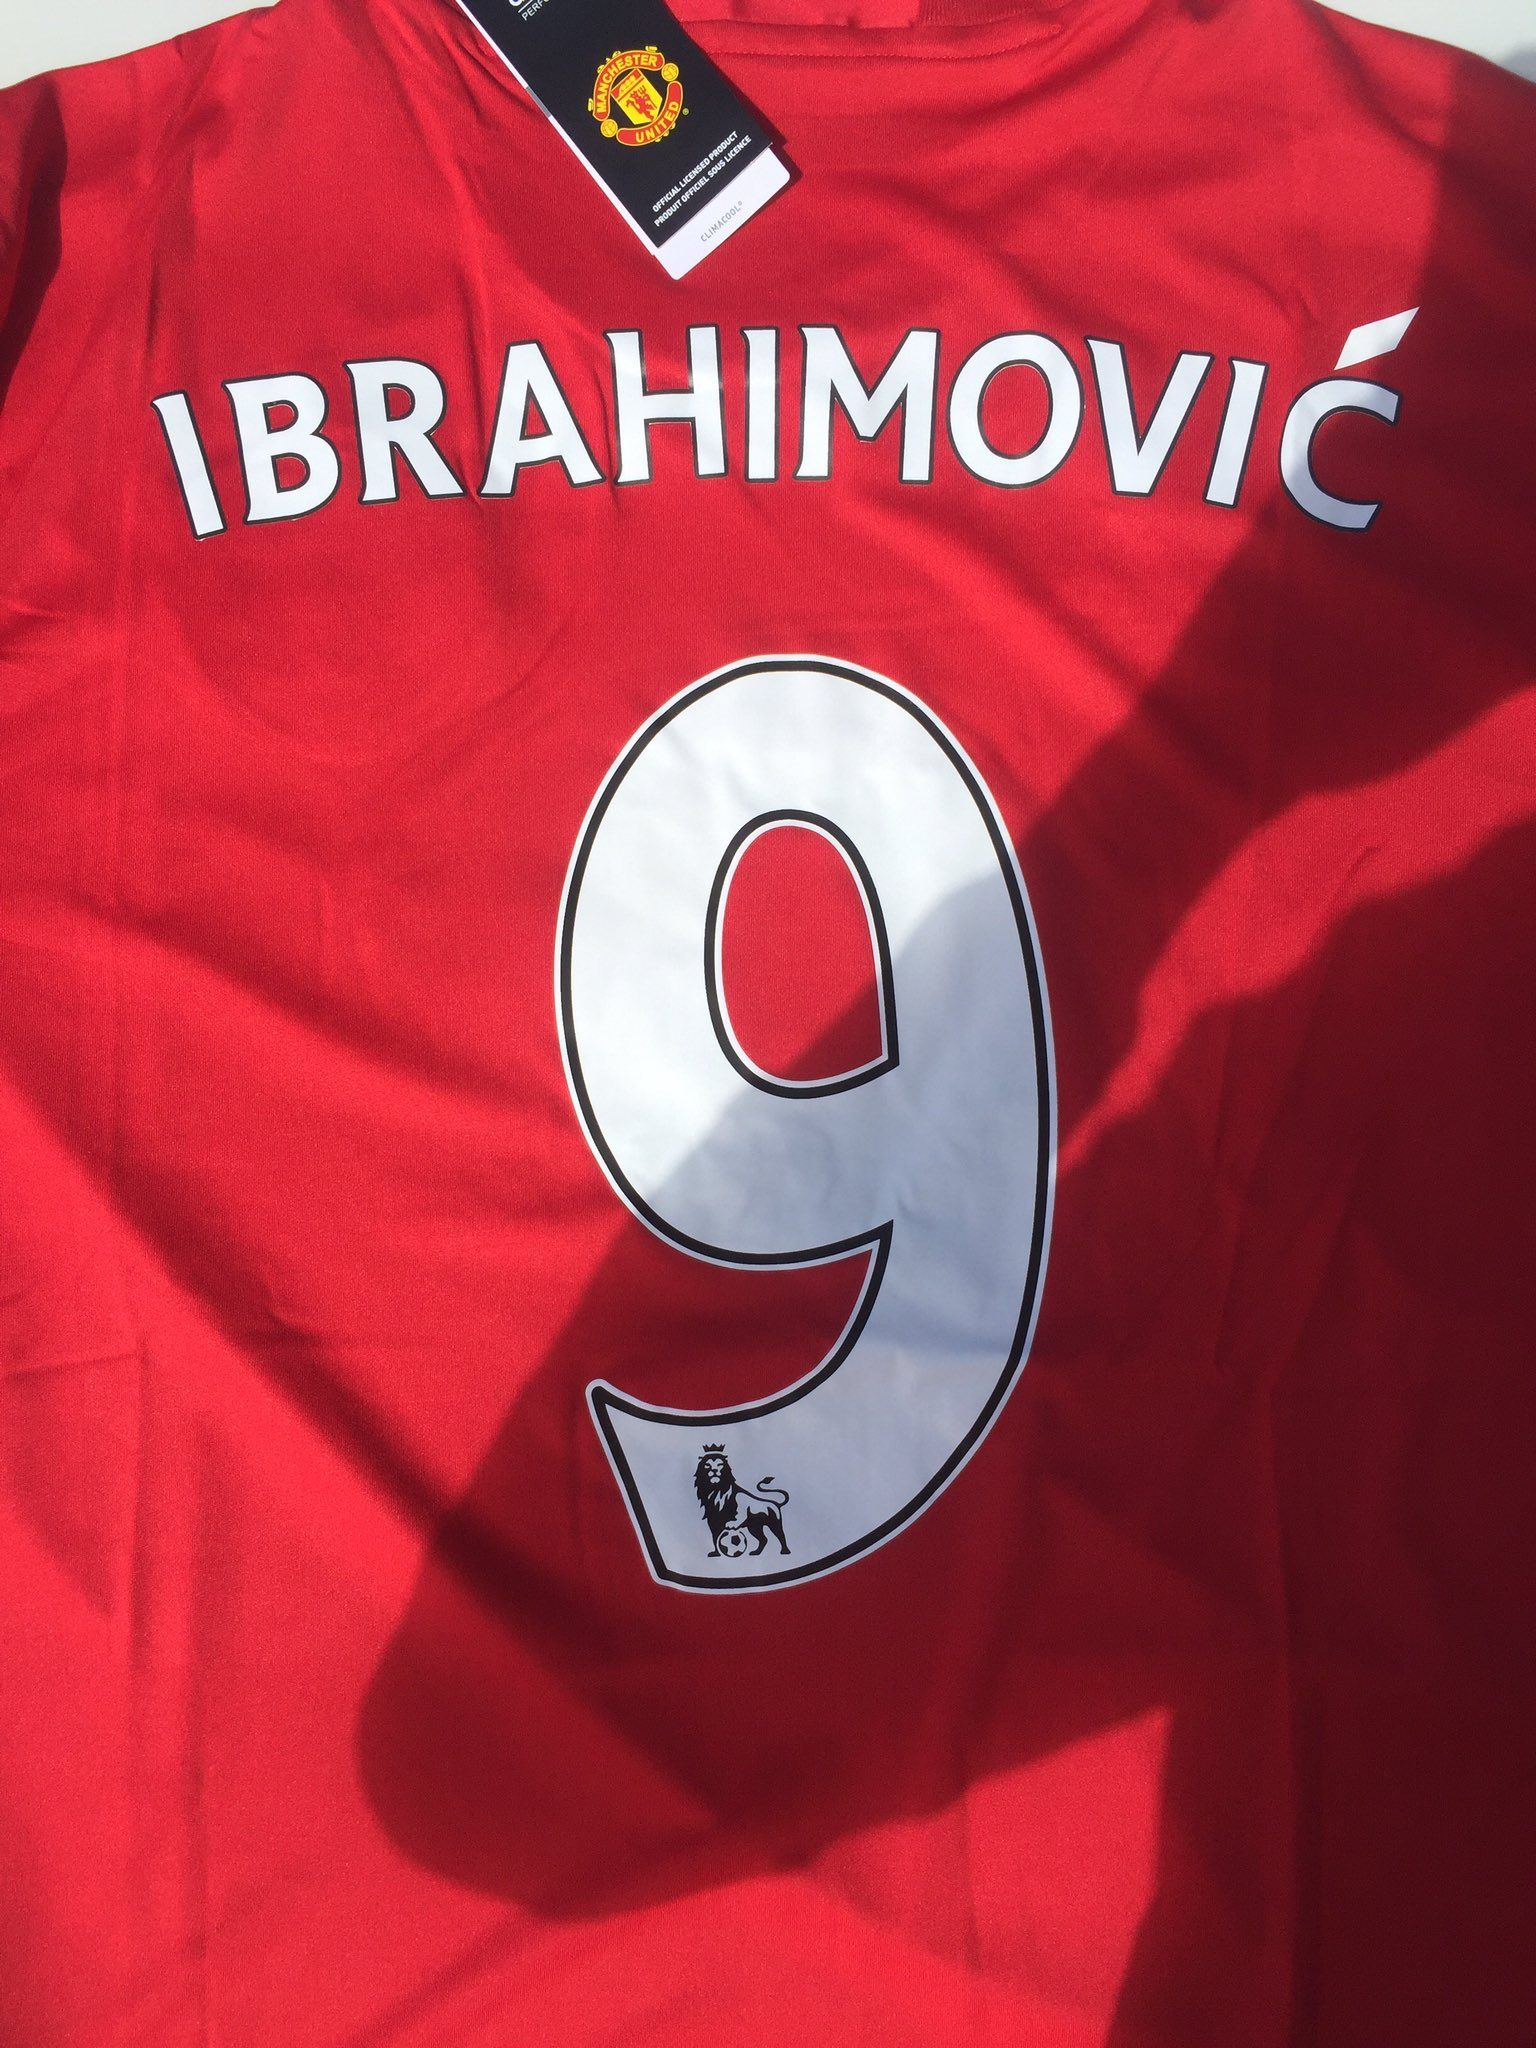 super popular 8f34a c268a Manchester United have started printing Ibrahimovic shirts ...